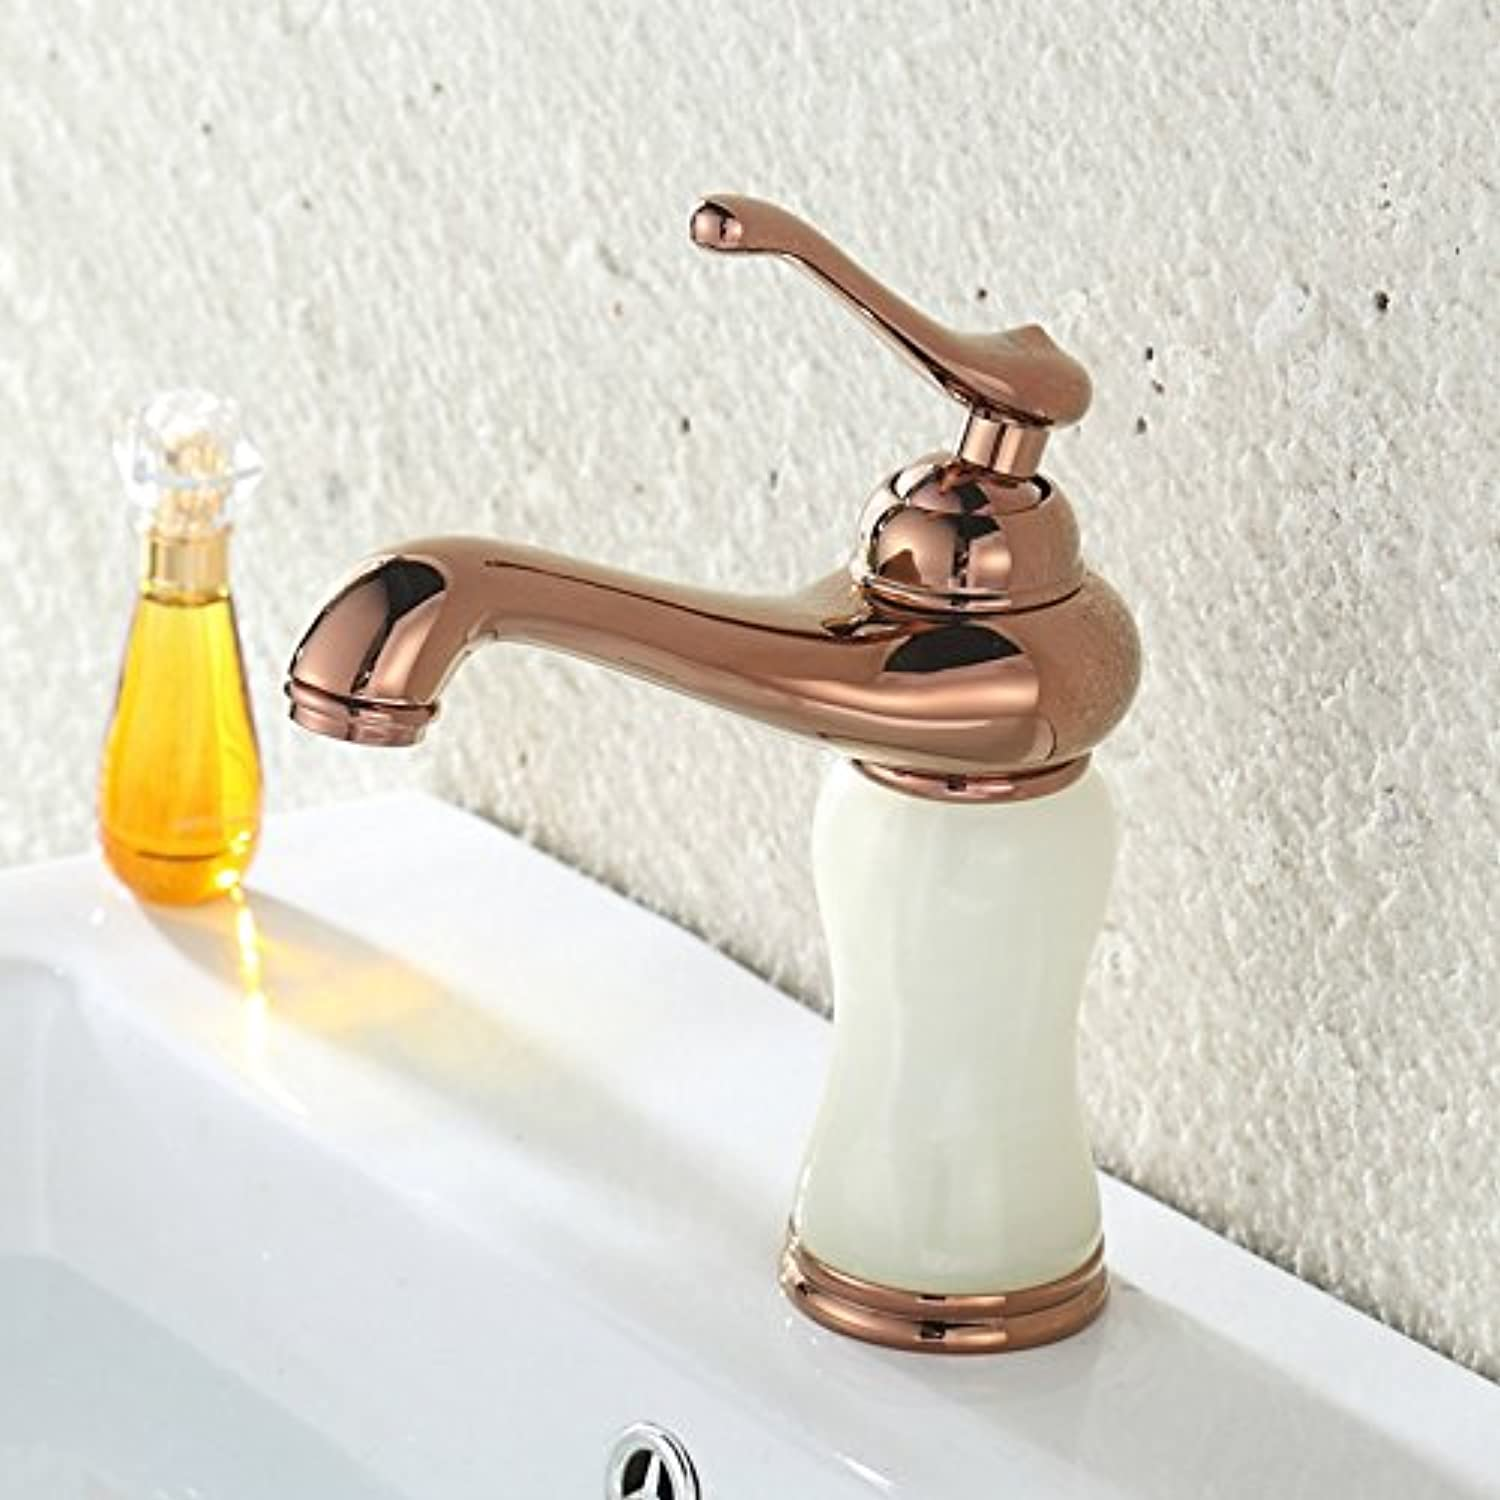 Retro Deluxe Fauceting Free Shipping Luxury pink golden bathroom tap by solid brass bathroom basin faucet with gold stone bathroom mixer taps